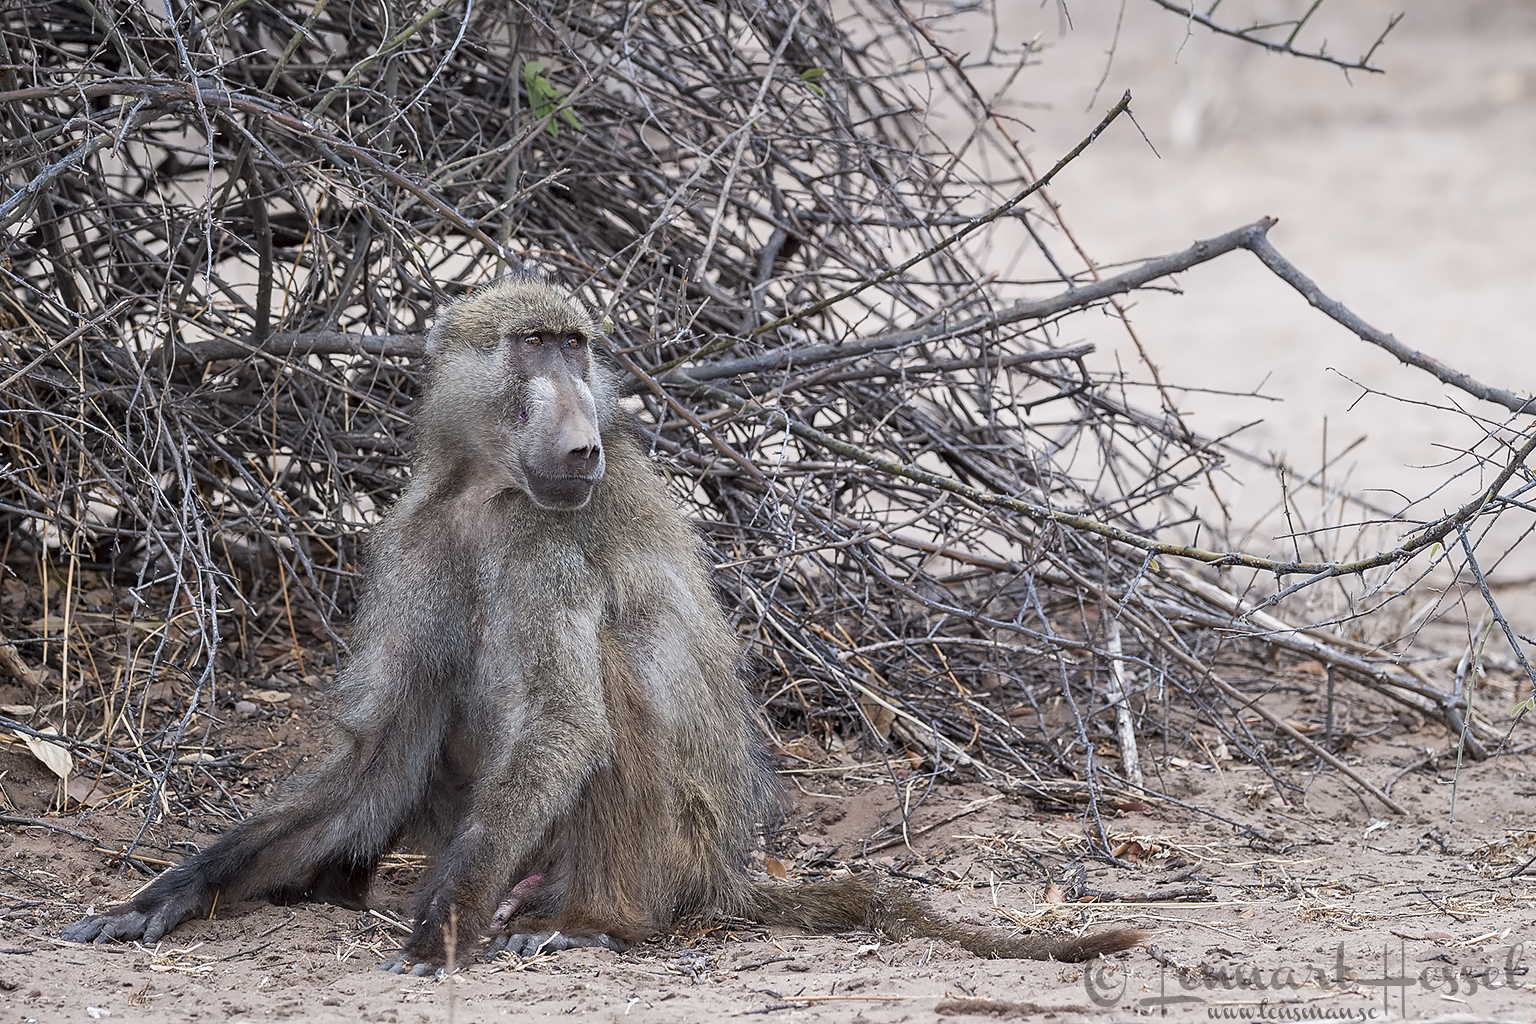 Chacma Baboon at Chobe River area, Botswana